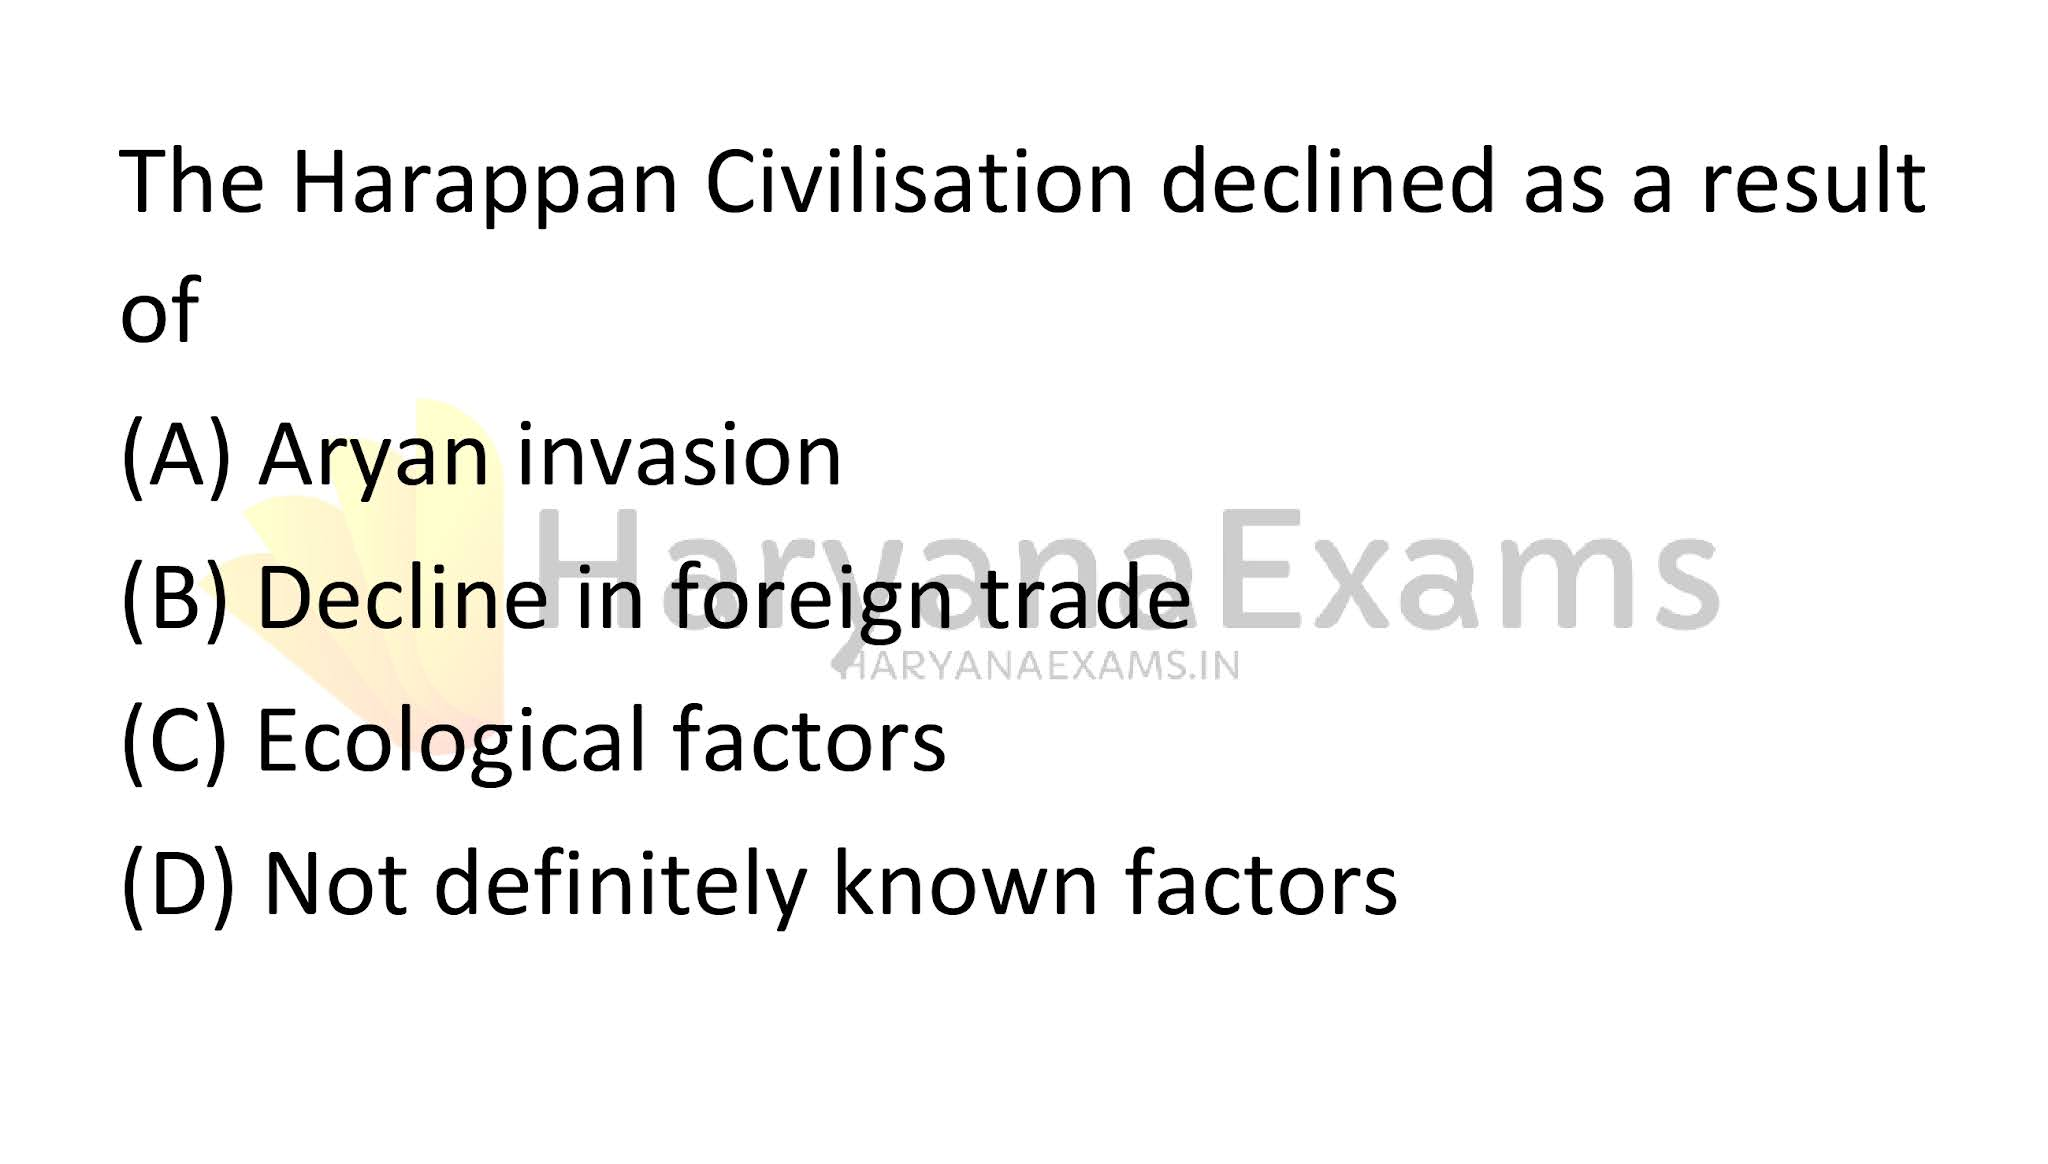 The Harappan Civilisation declined as a result of